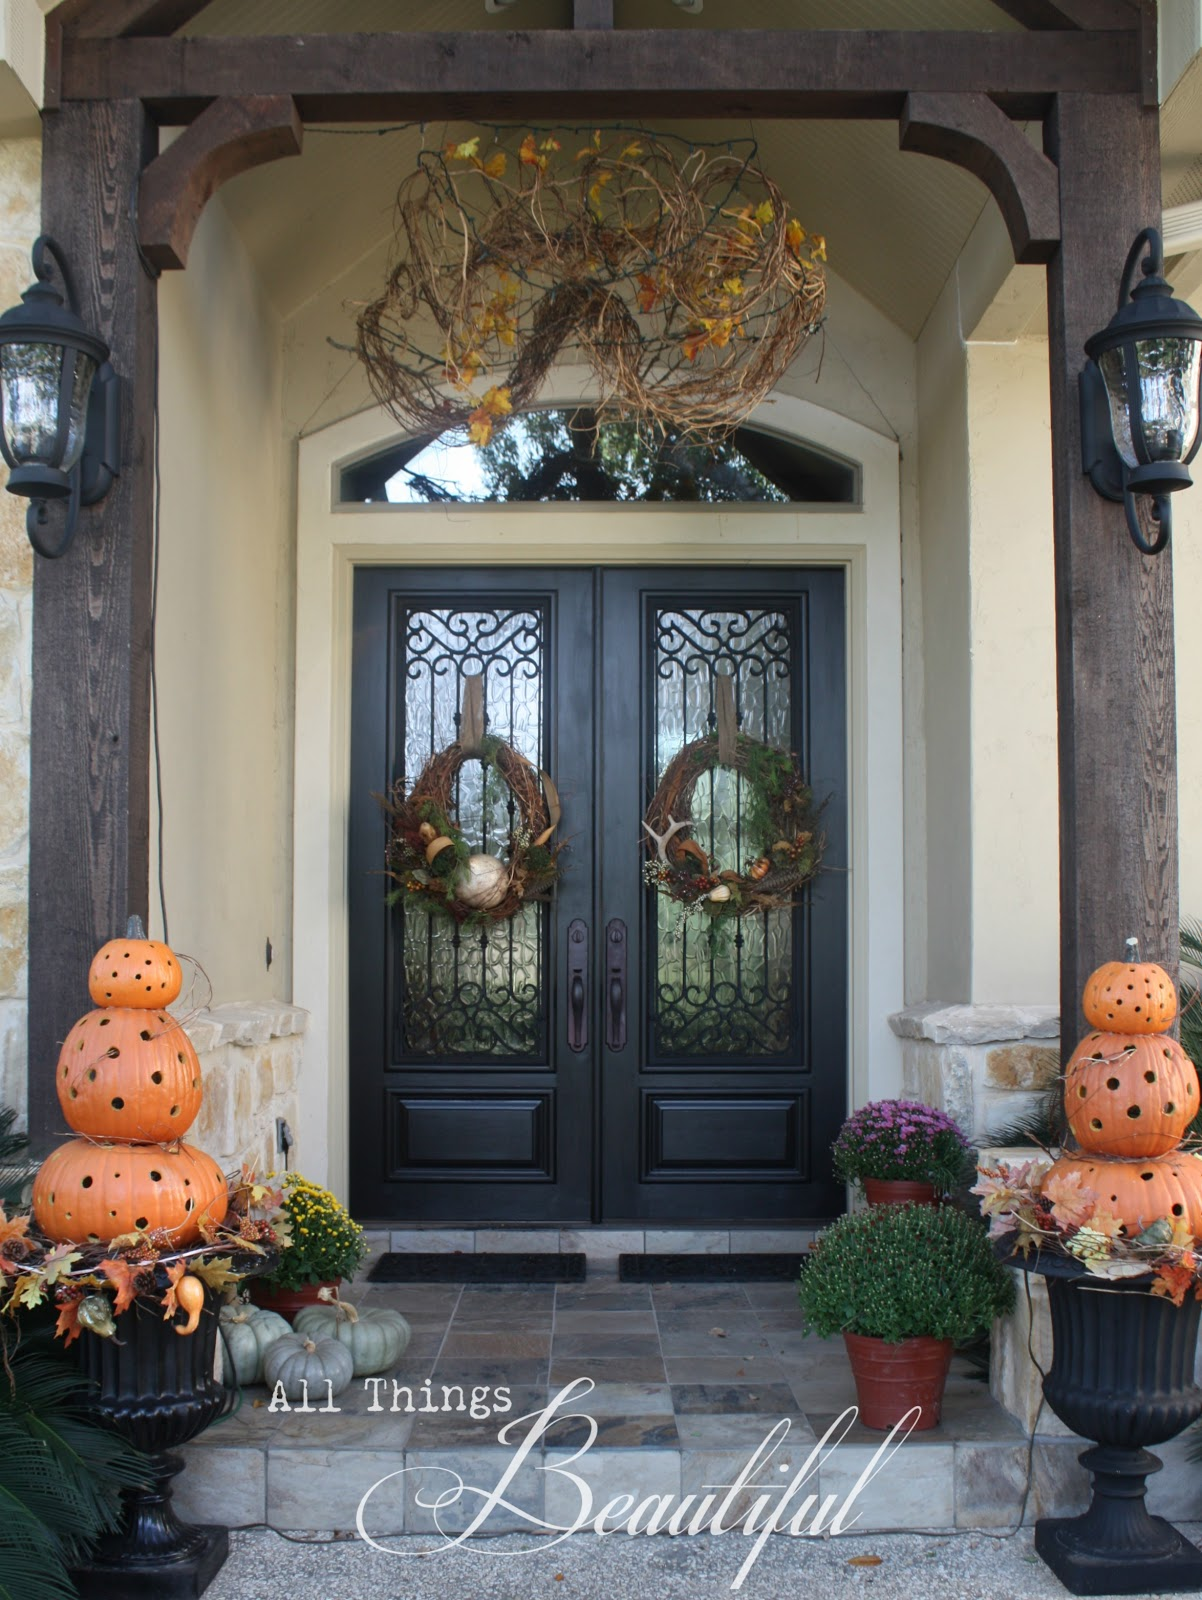 All things beautiful fall wreath porch decor Beautiful fall front porches